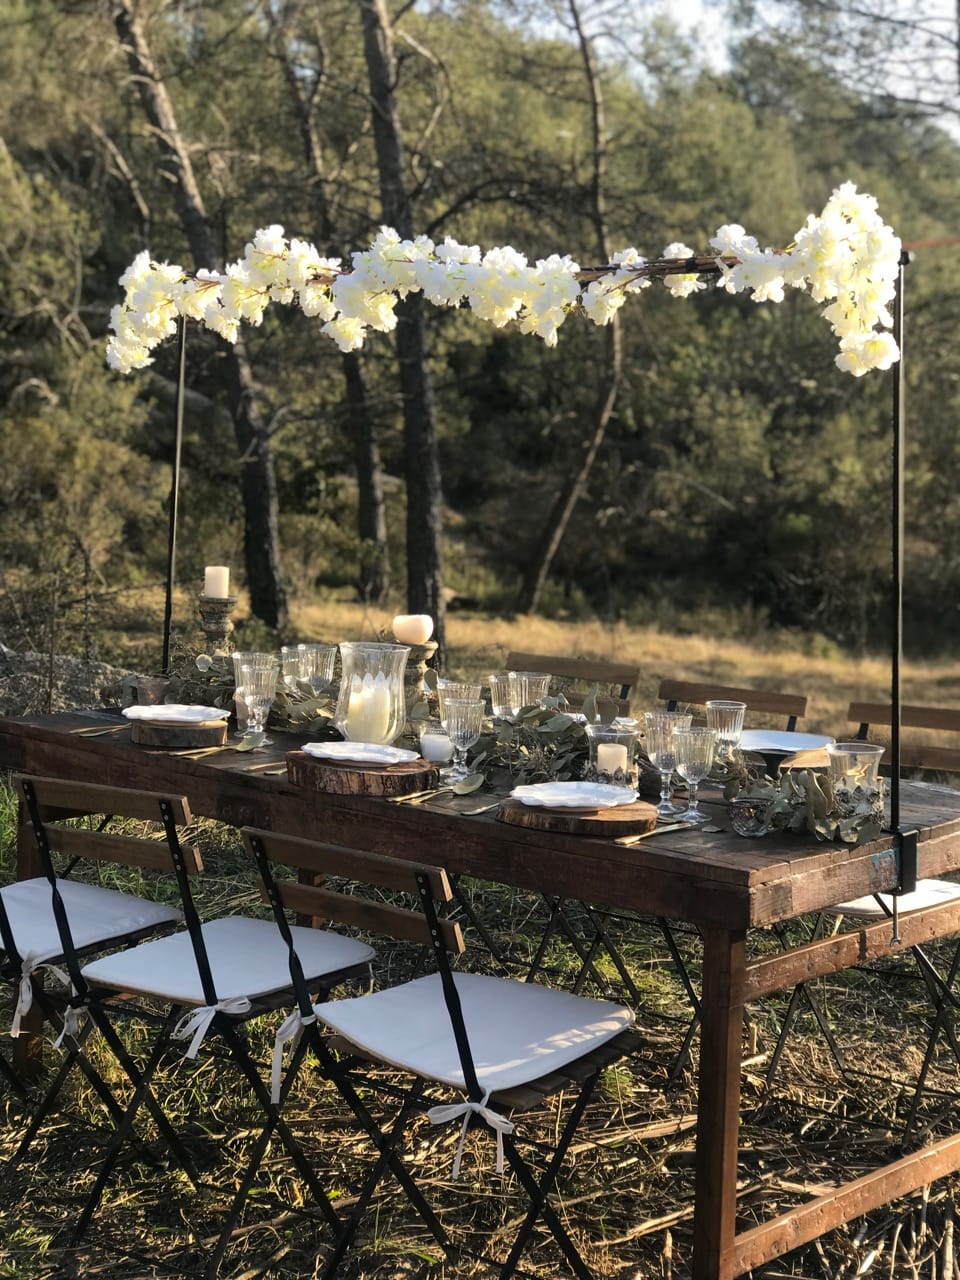 Chaises jardin + rustic wood table